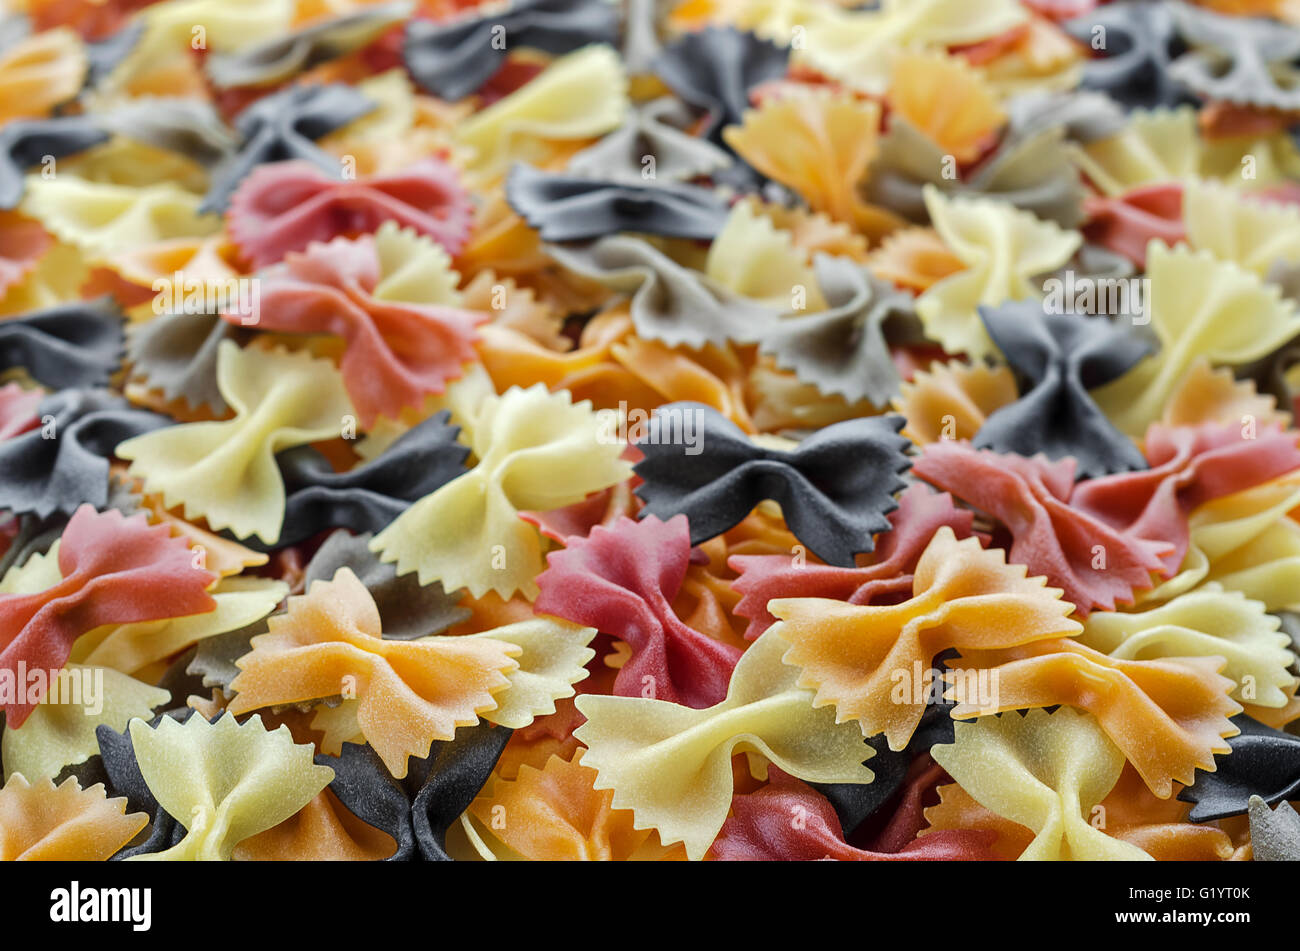 Textured background of pasta - Stock Image